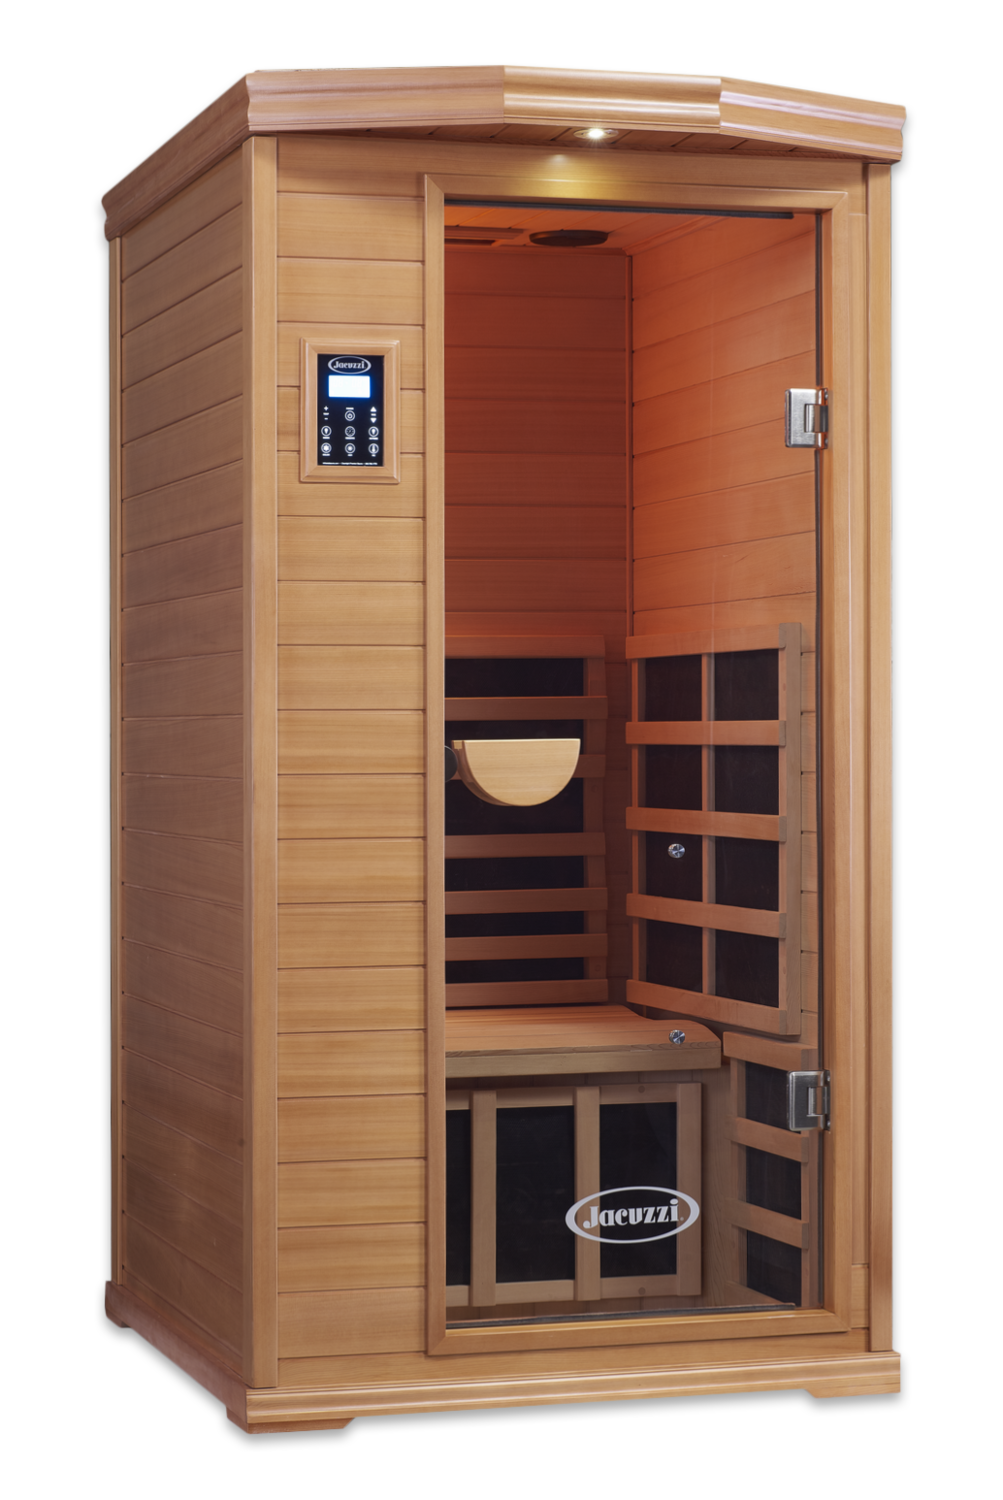 CLEARLIGHT PREMIER IS-1 ONE PERSON FAR INFRARED SAUNA